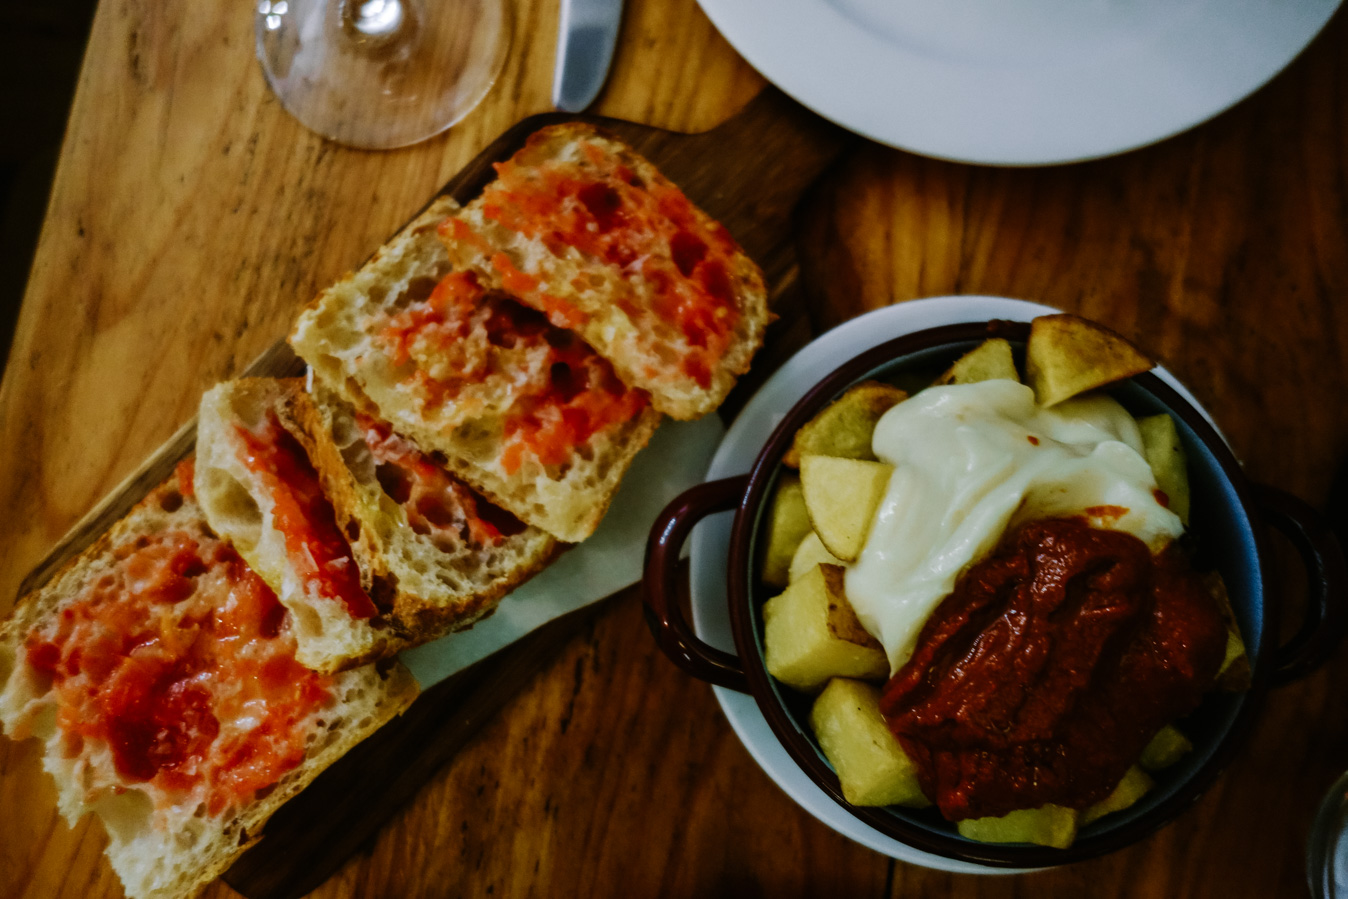 Santa Gula is one of the best restaurants in Barcelona. Enjoy delicious food at their outdoor dining tables